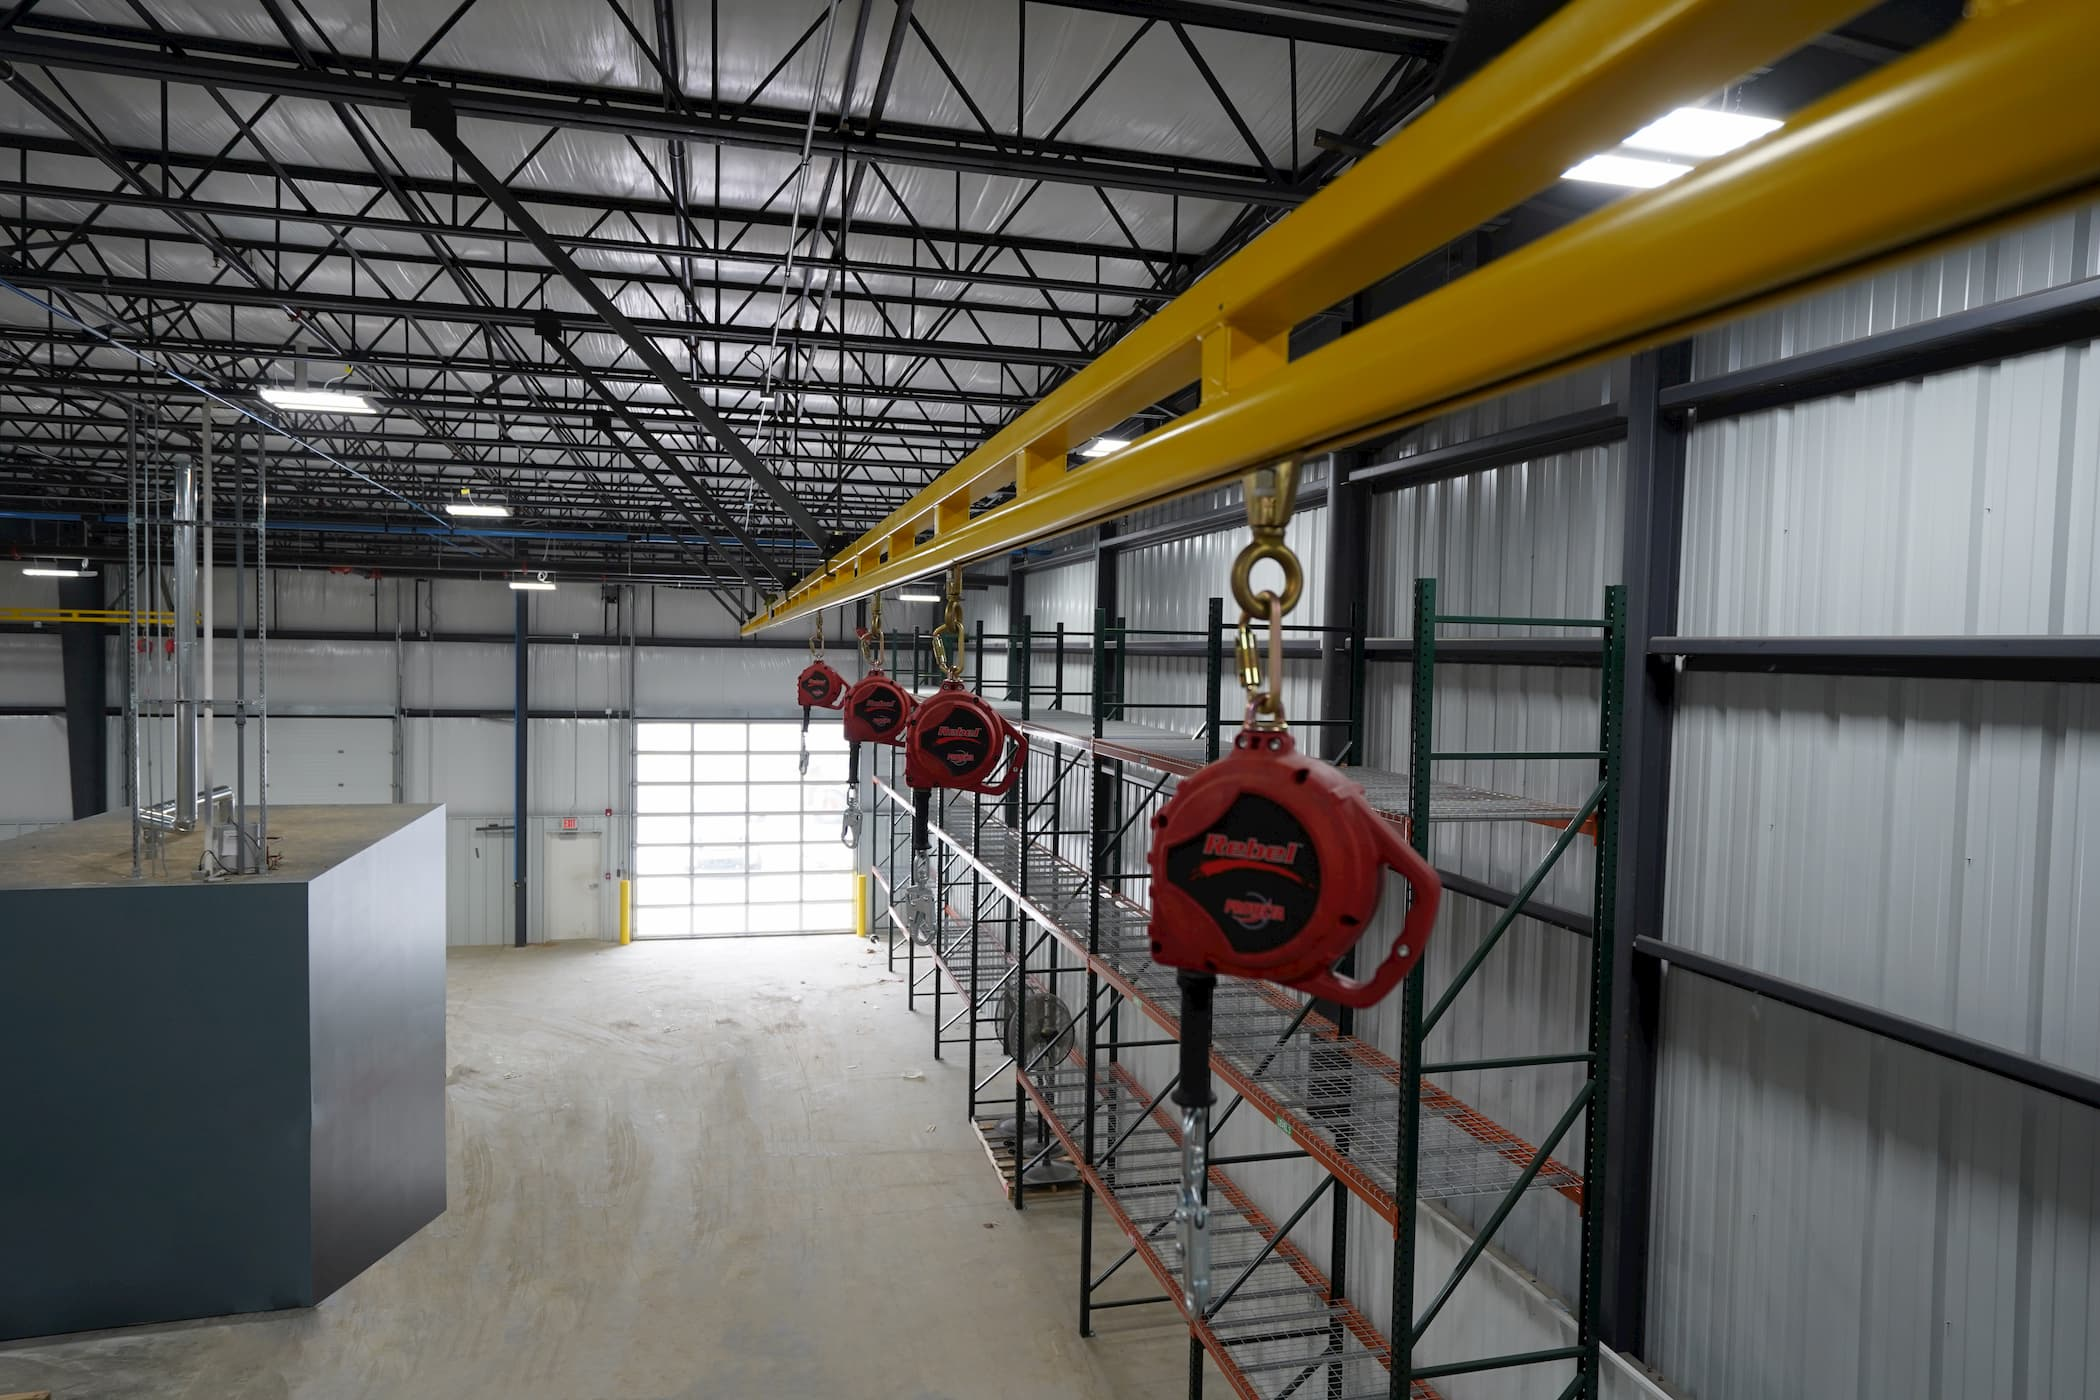 Fall Protection System Using Enclosed Track and SRLs